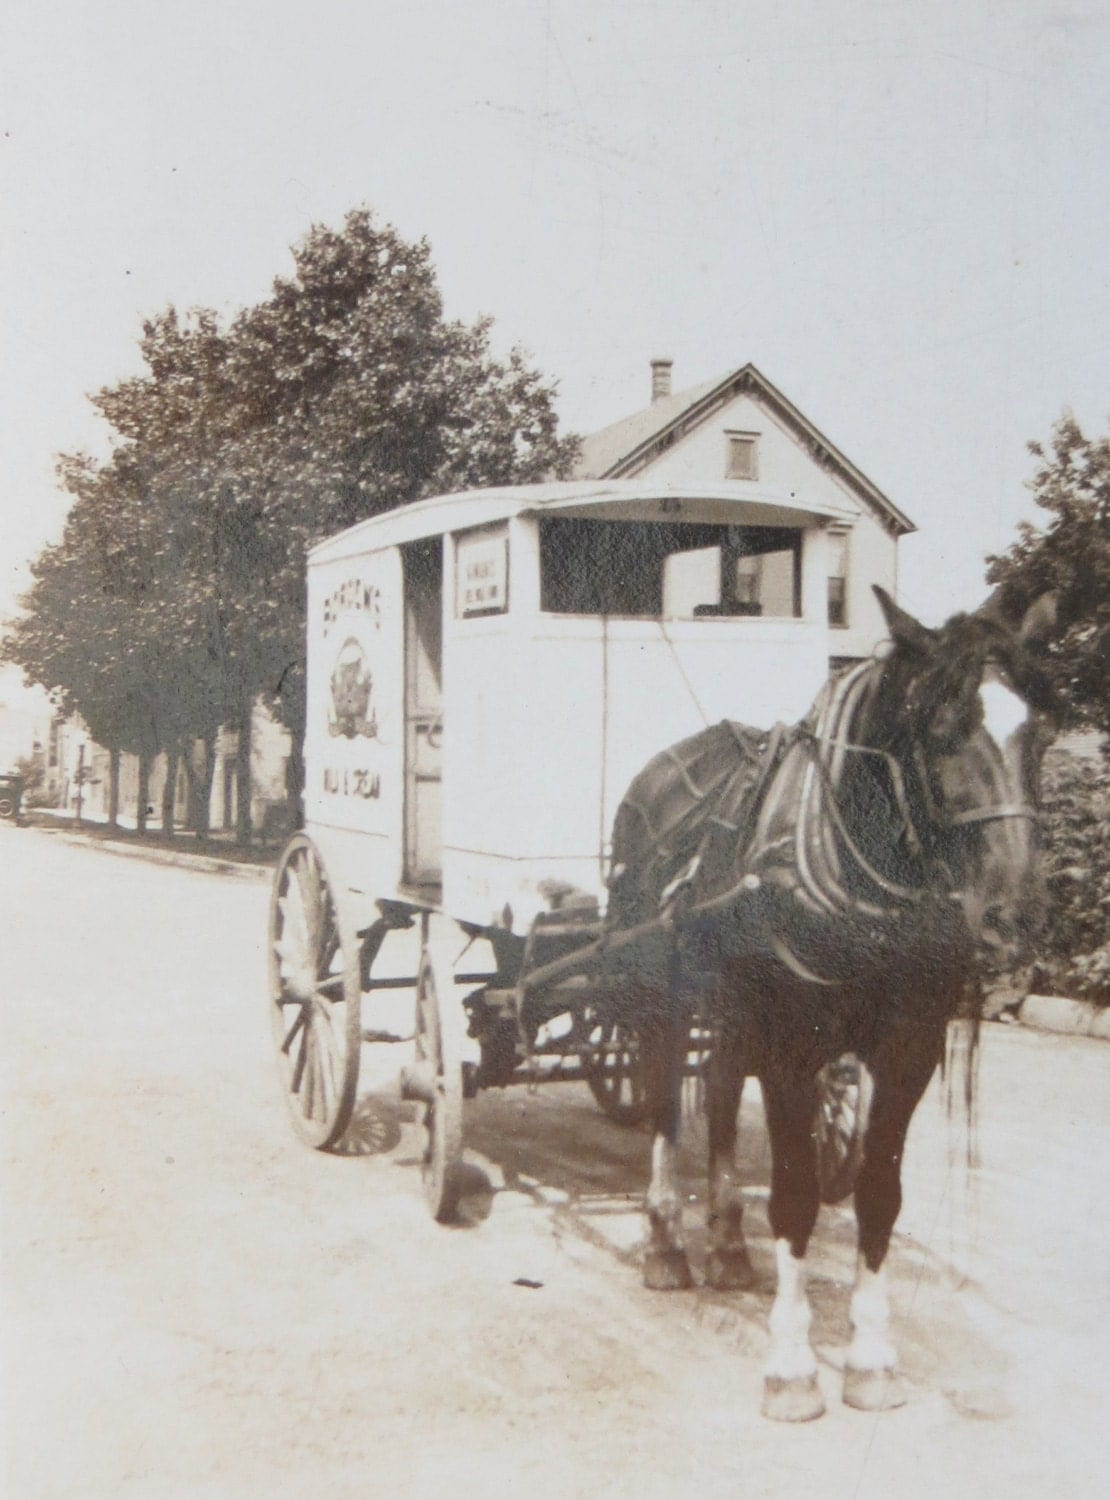 Vintage 1920's Borden's Dairy Horse Drawn Delivery Cart Snapshot Photo - InteriorVintage